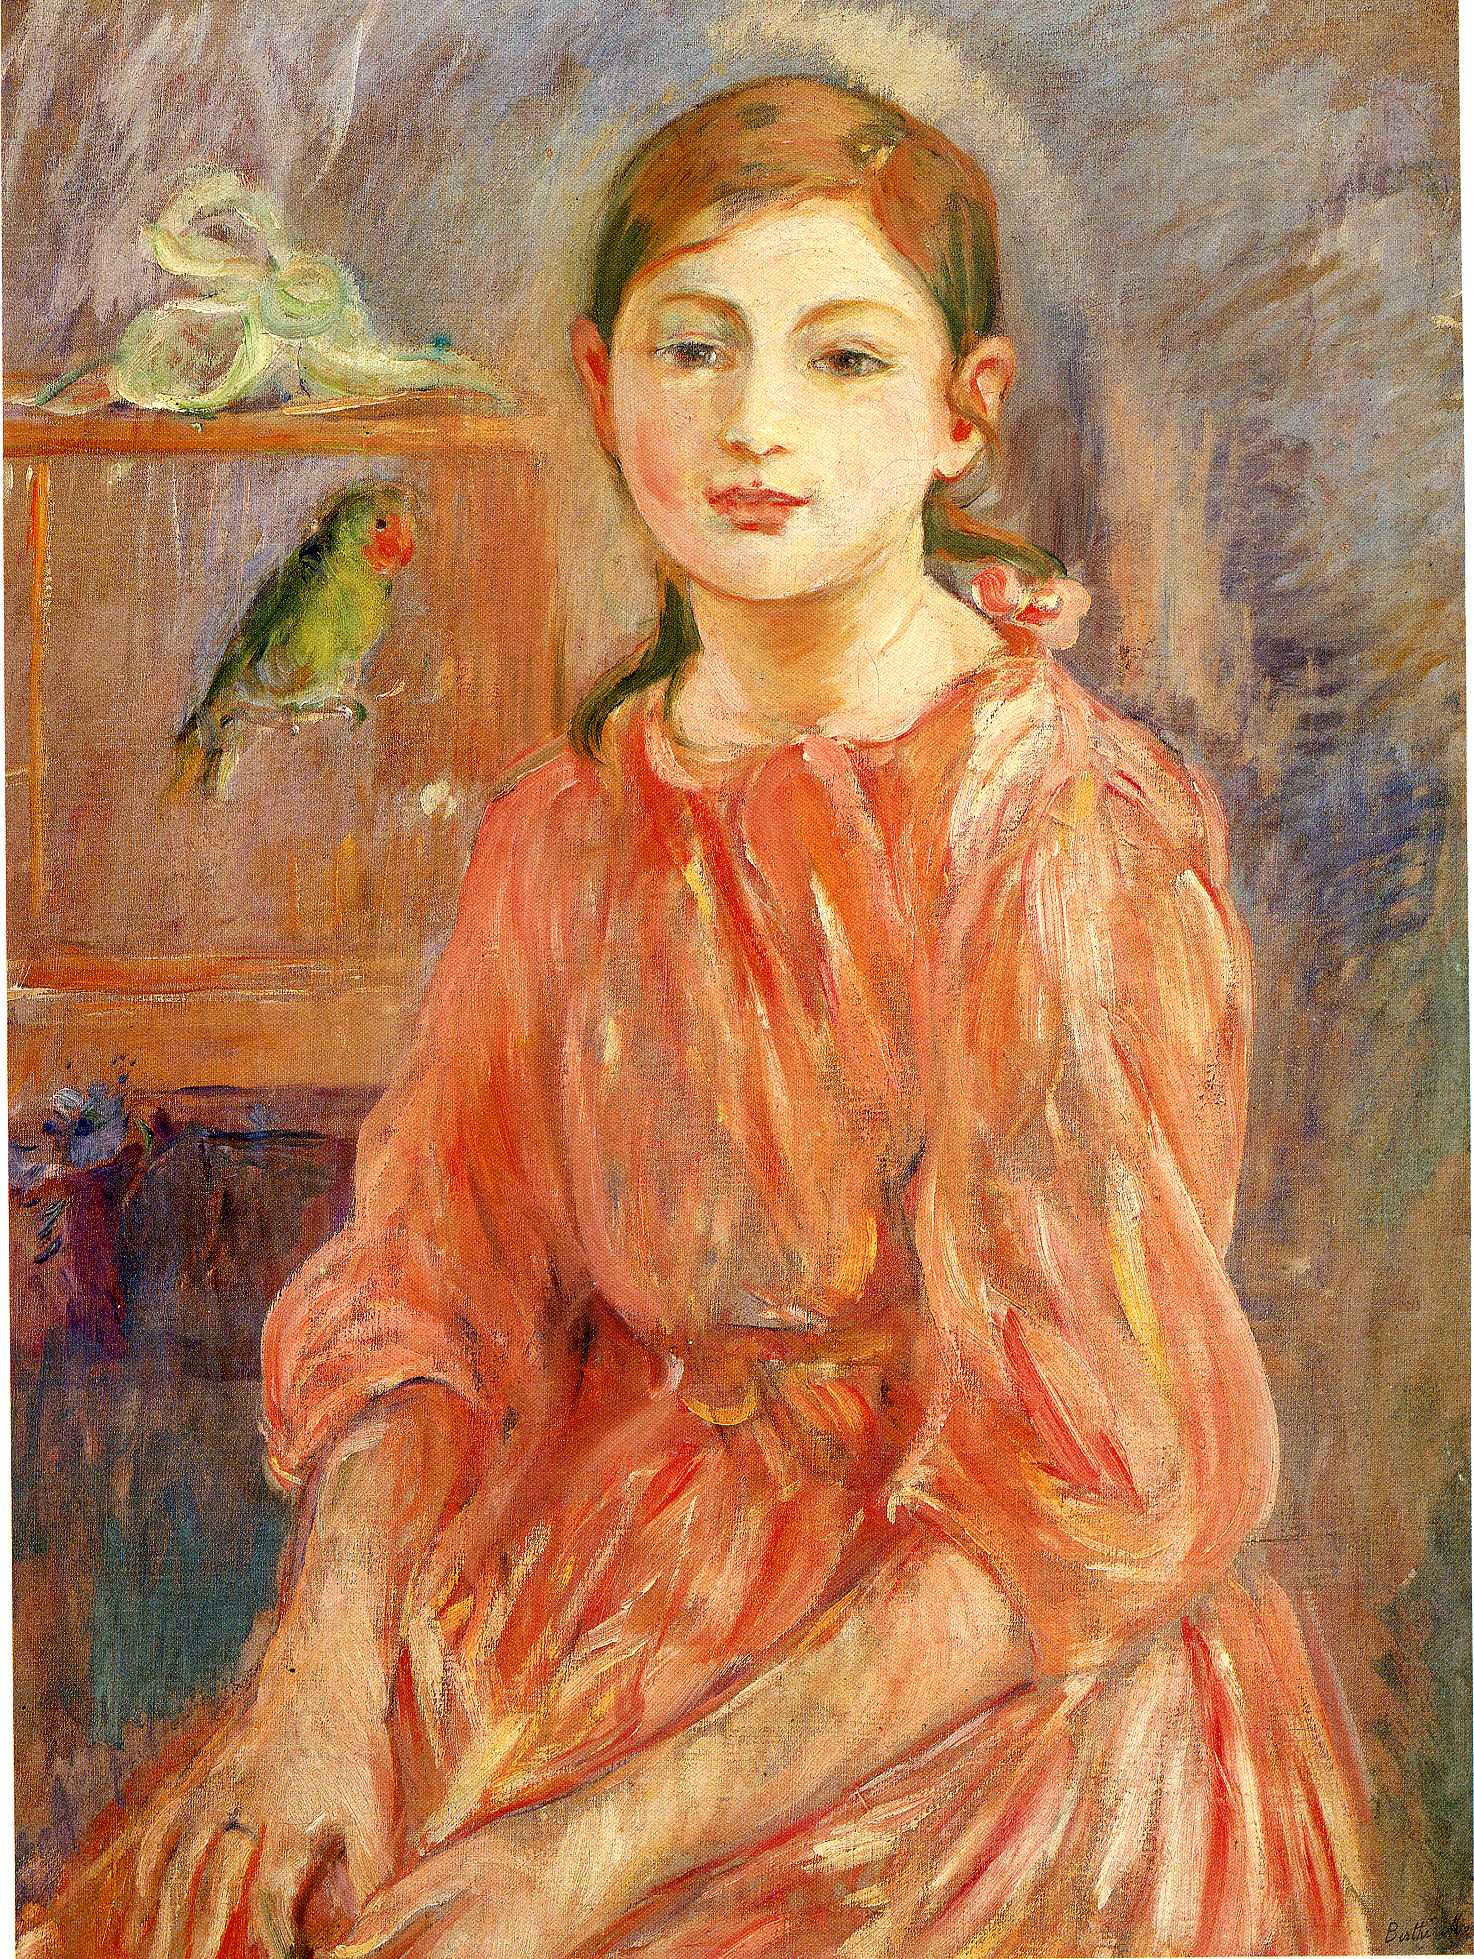 an introduction to the life of berthe morisot The cradle (1872-3) by berthe morisot musee d'orsay, paris berthe morisot (1841-95) contents • biography • early life and training • at the french salon • meets manet.